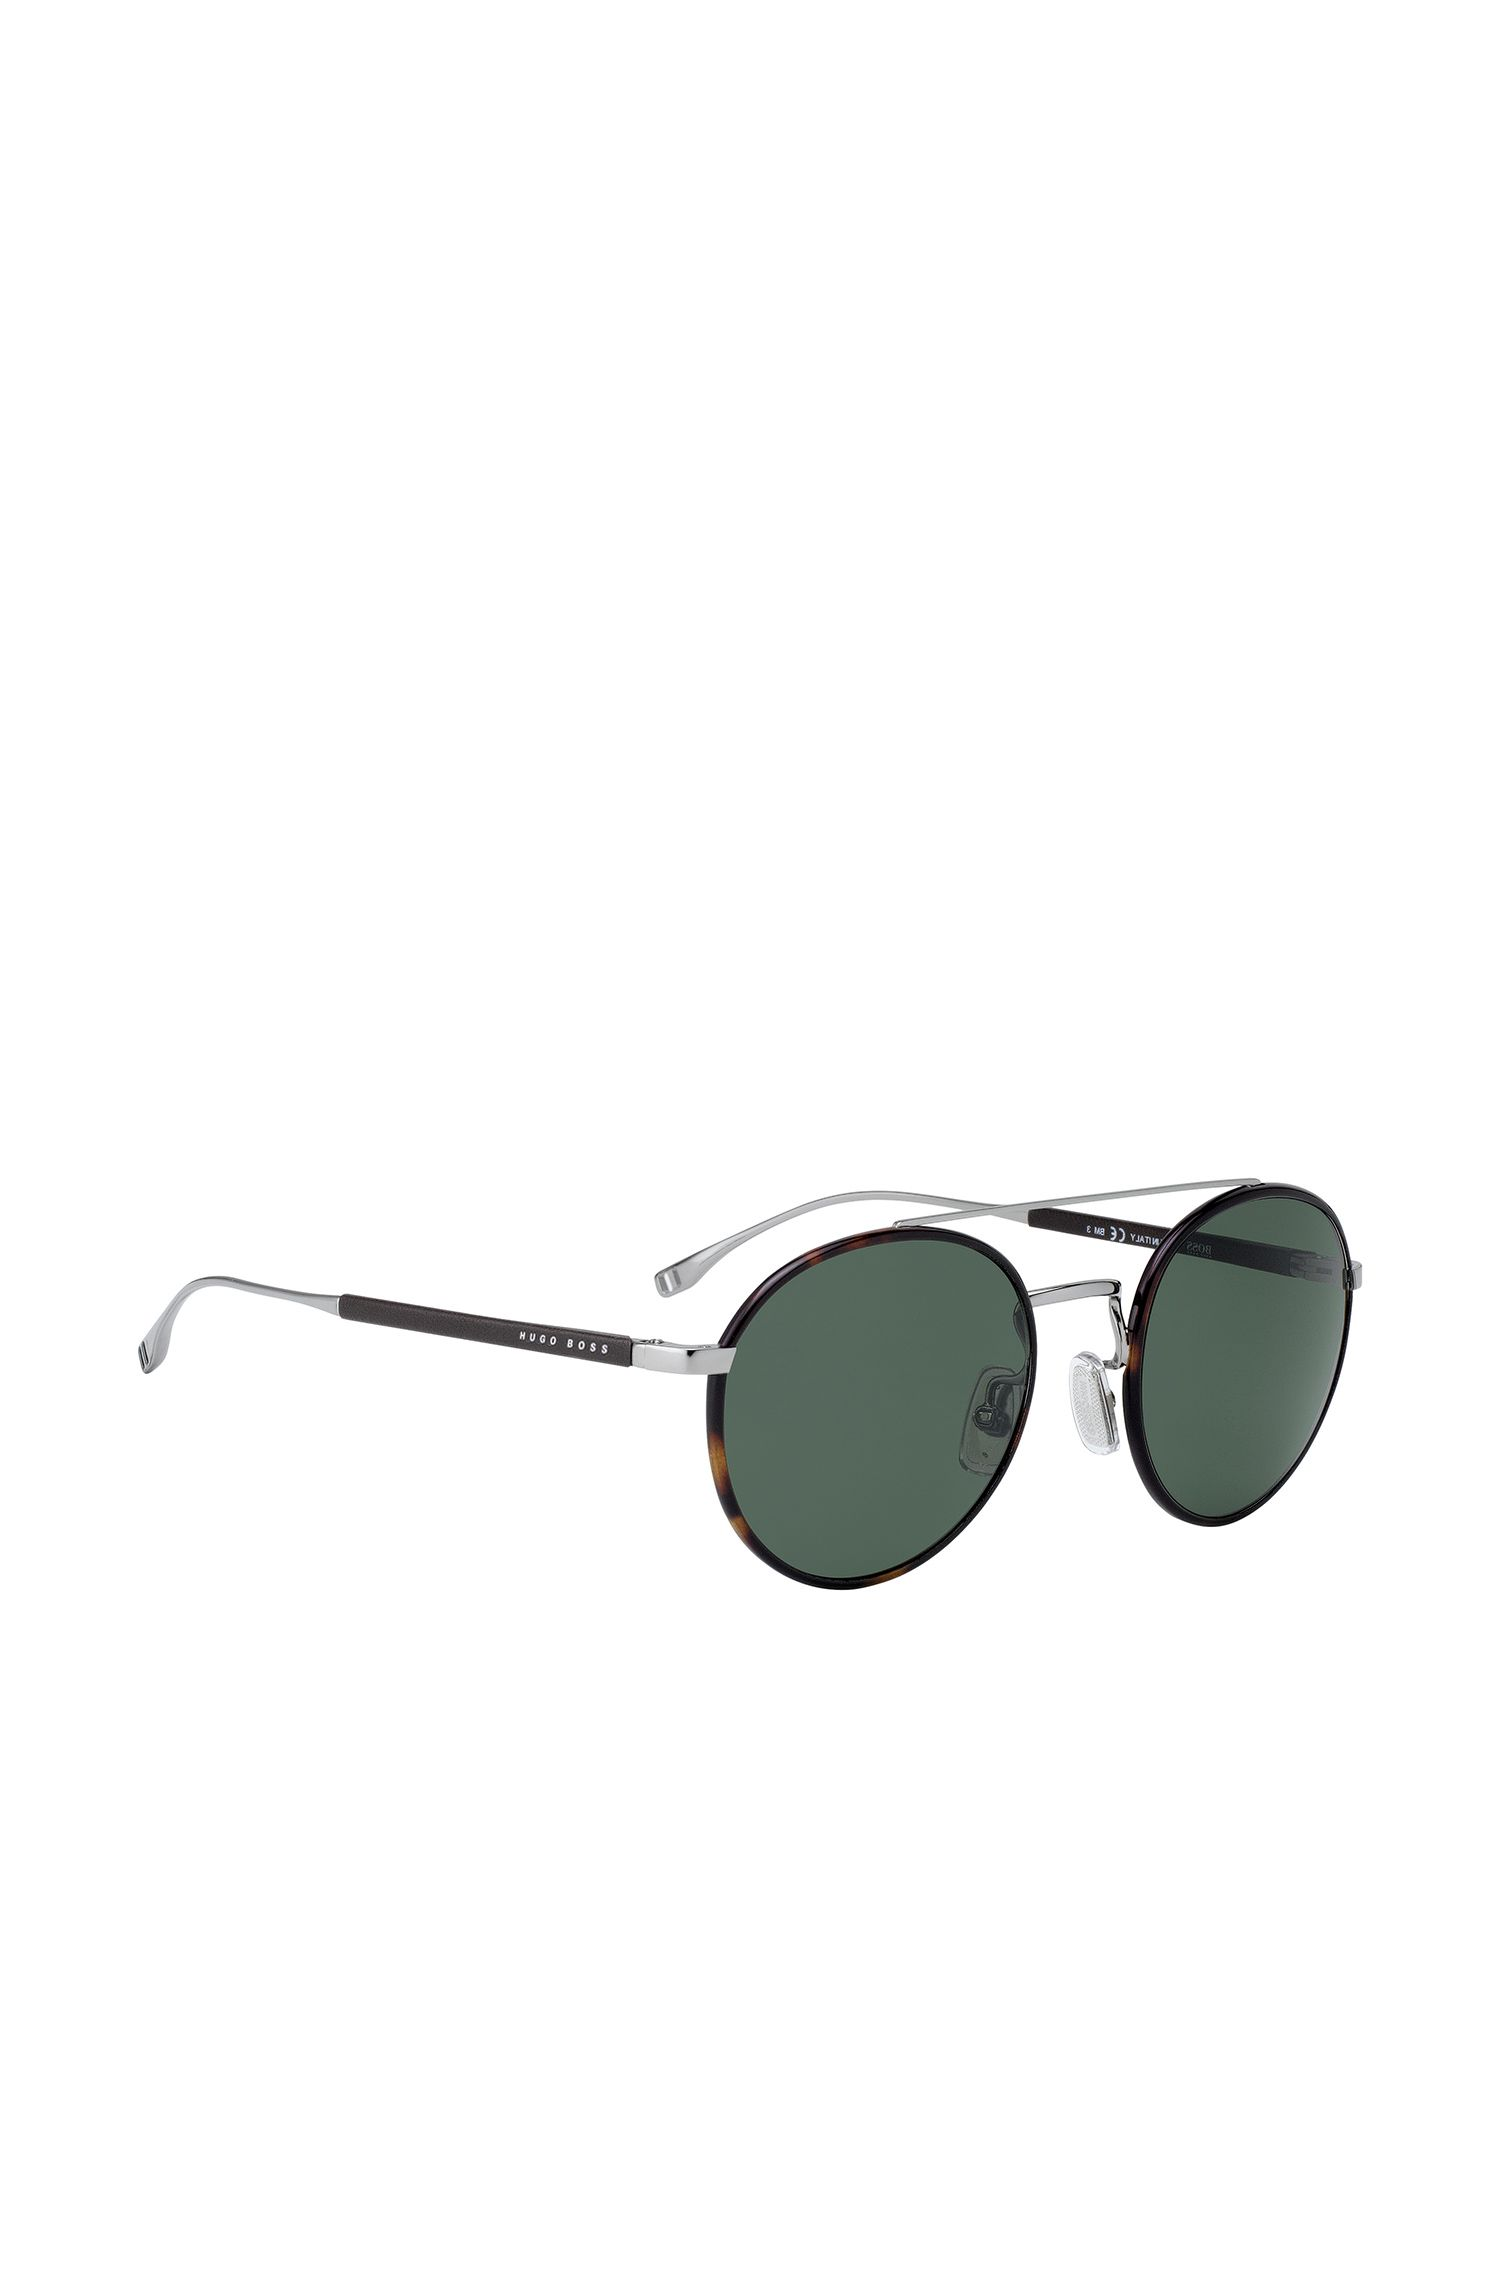 Green Lens Round Leather Wrapped Sunglasses | BOSS 0886S